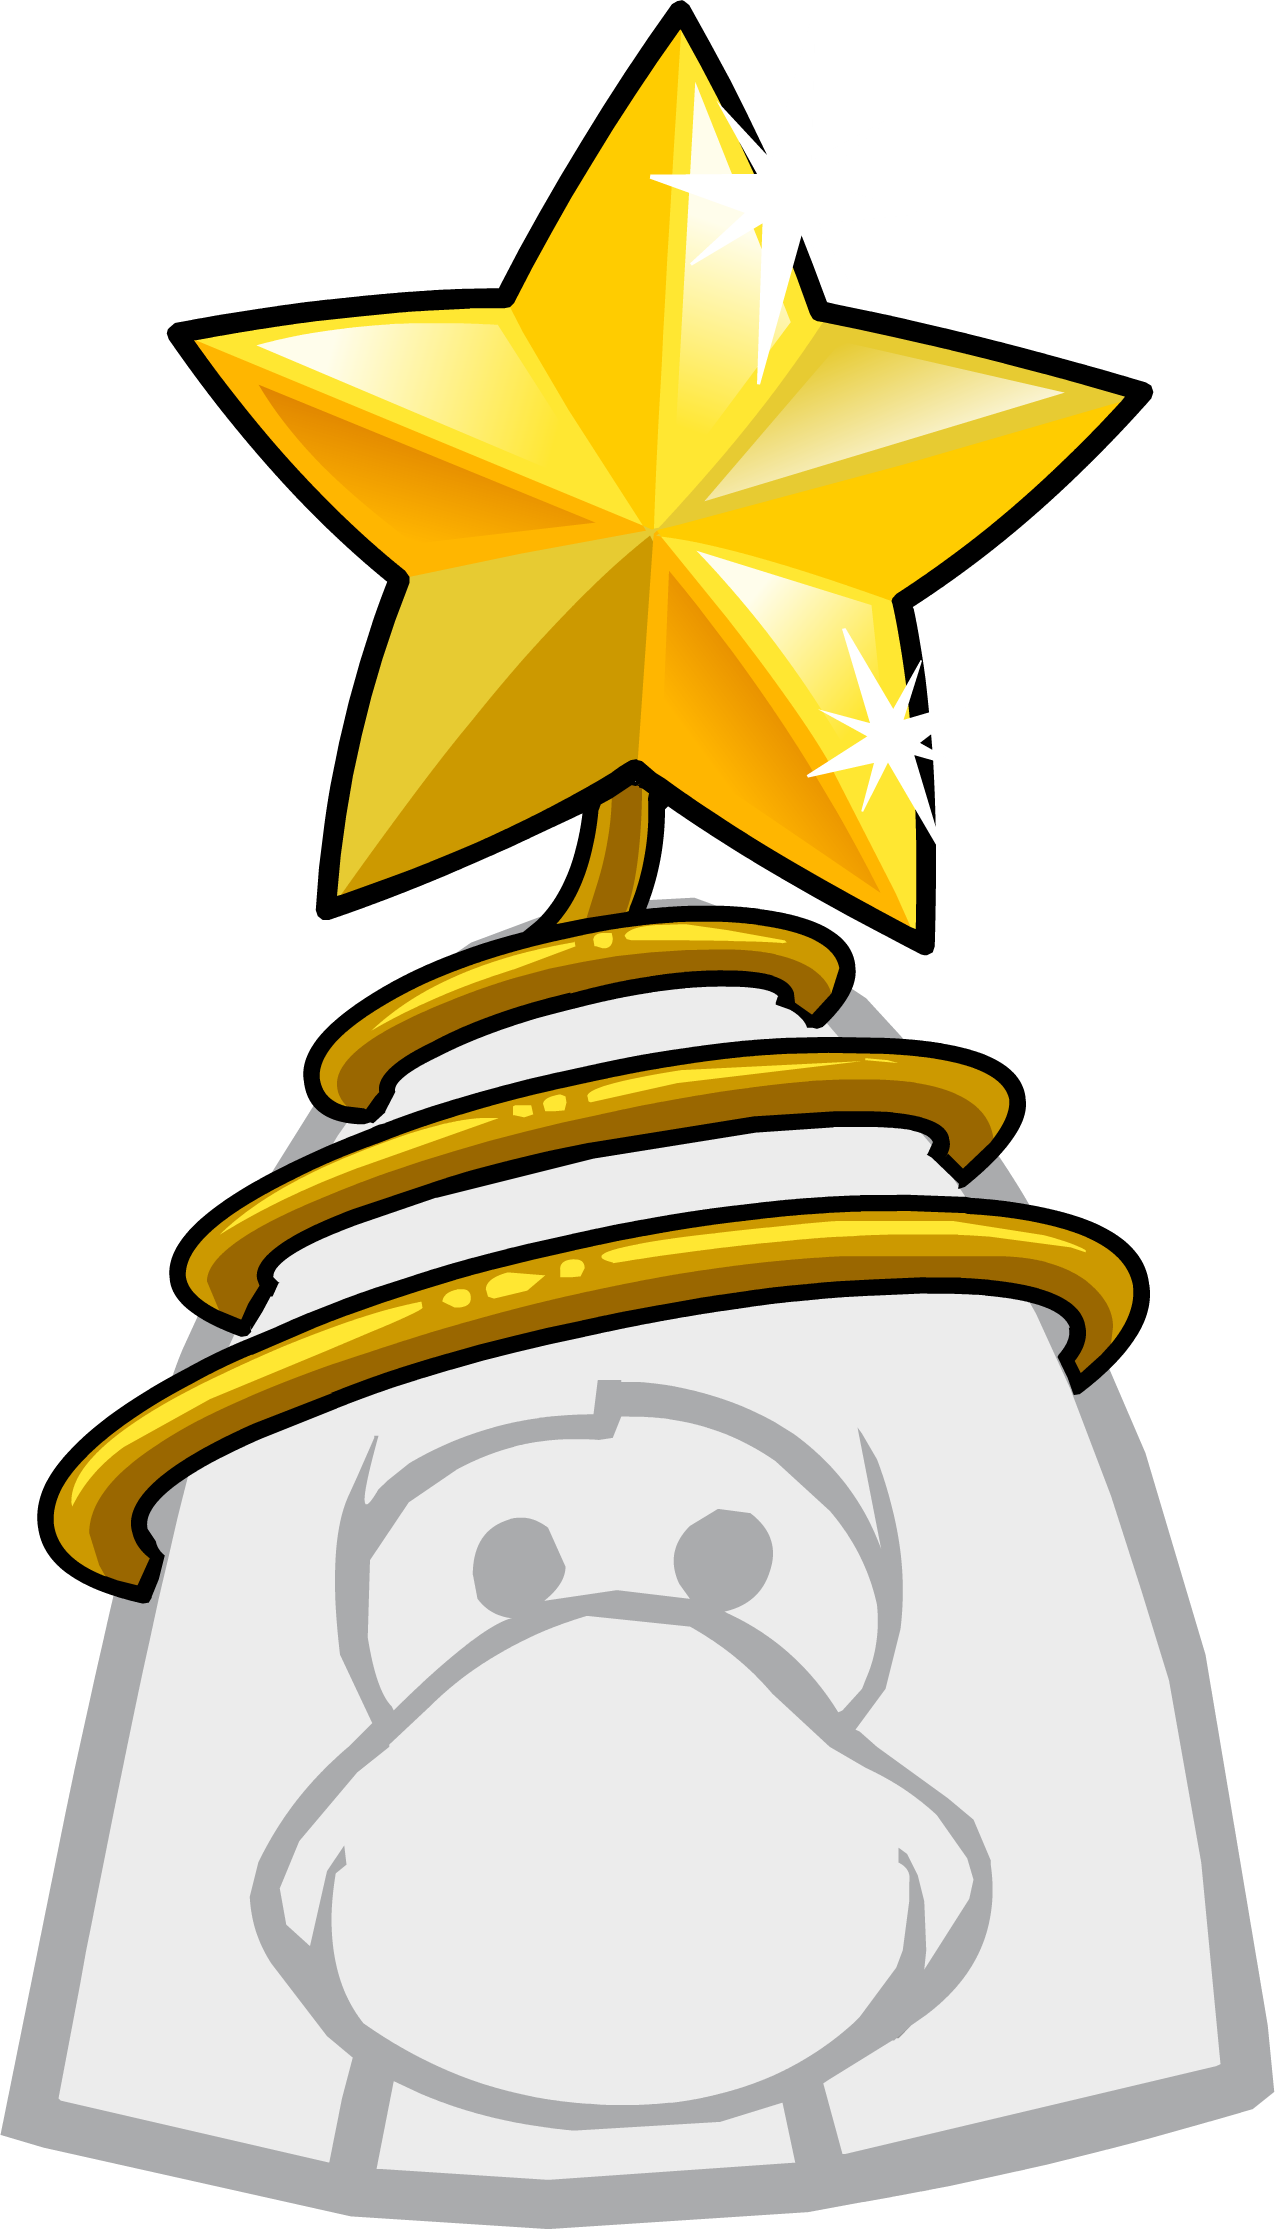 Star tree topper clipart svg royalty free The Tree Topper | Club Penguin Wiki | FANDOM powered by Wikia svg royalty free